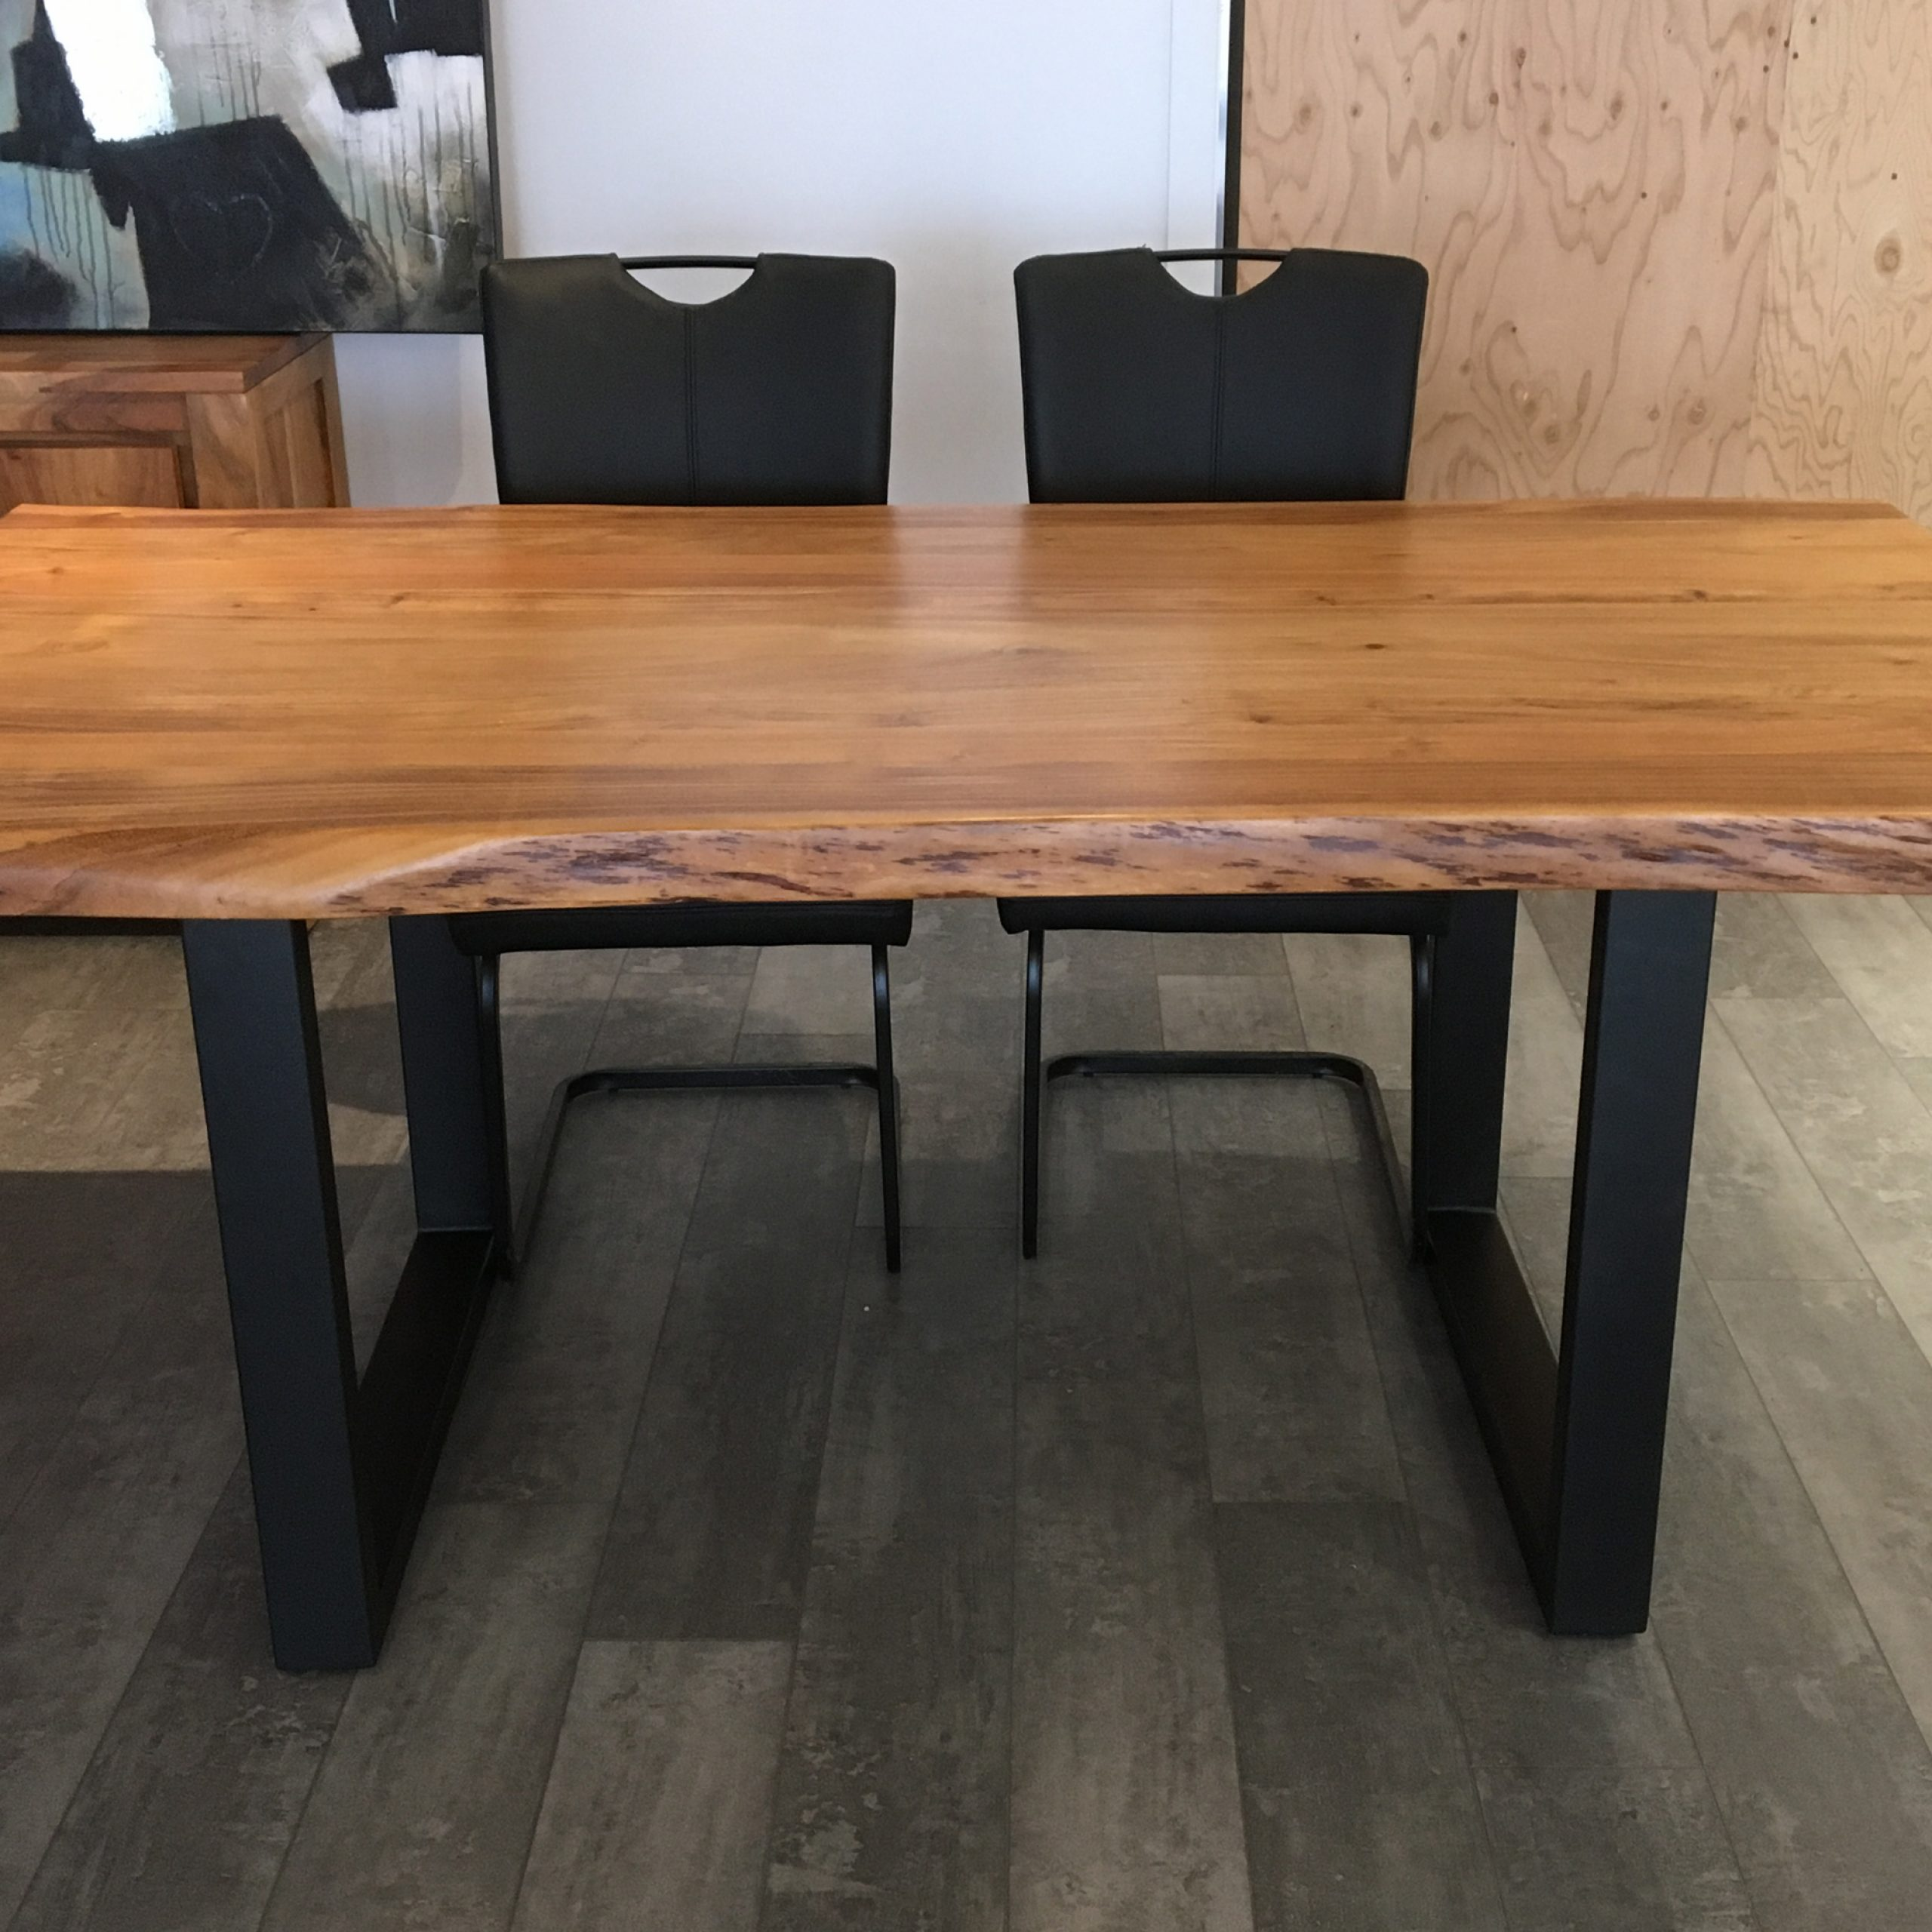 """Acacia Dining Tables With Black Legs With Regard To Favorite Corcoran Acacia Live Edge Dining Table With Black U Legs – 72"""" (View 21 of 25)"""